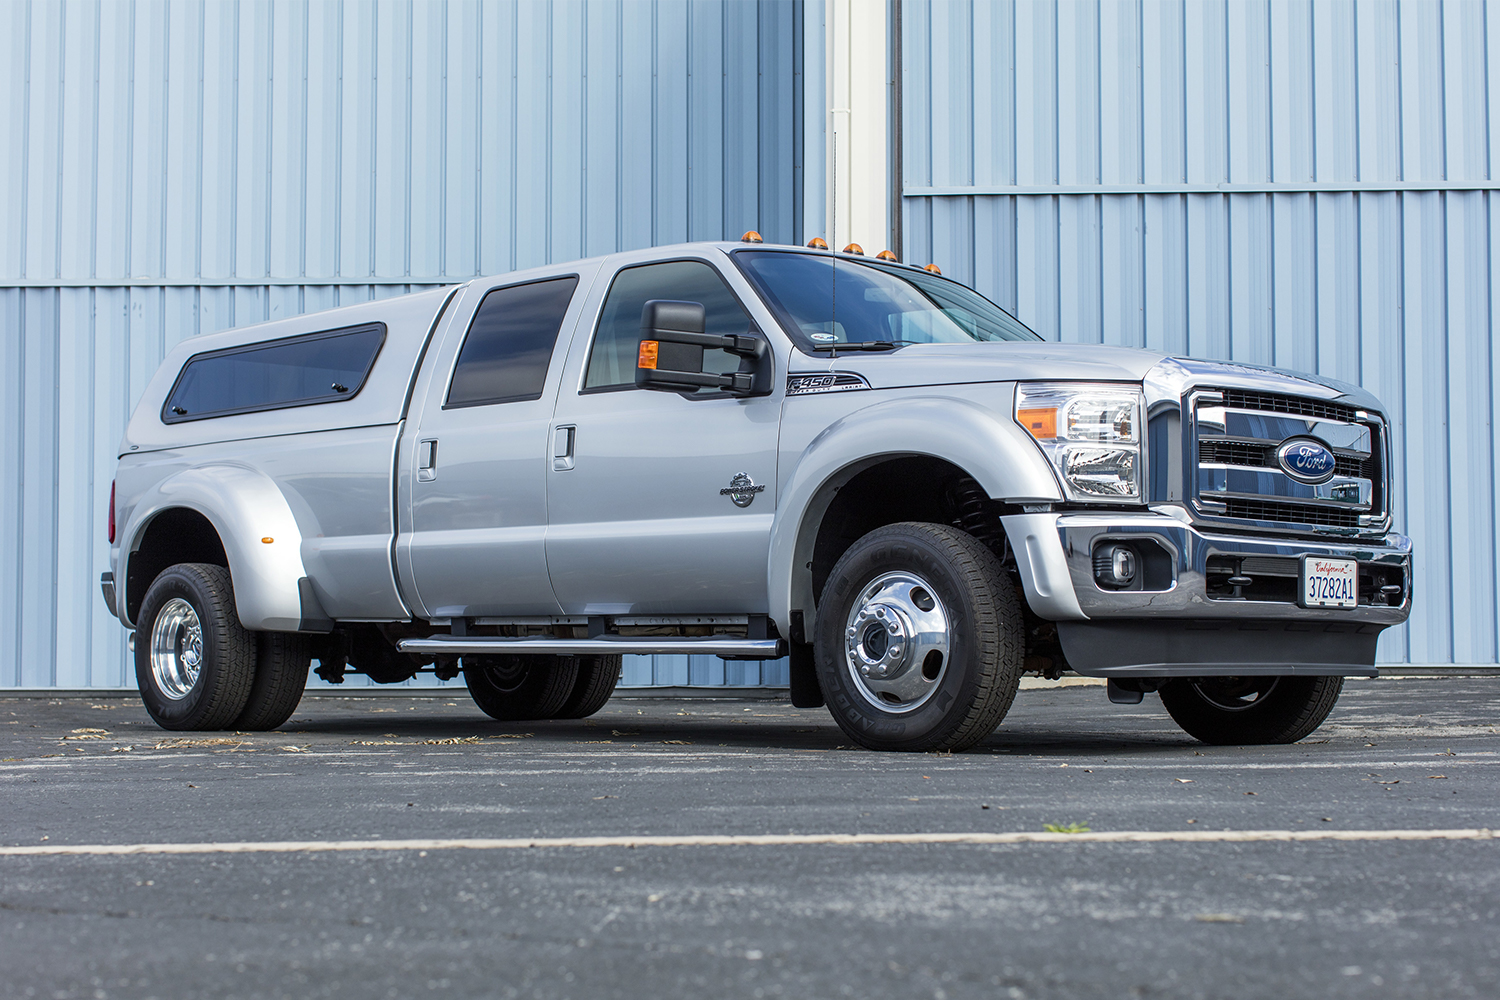 The 2011 Ford F-450 Super Duty Crew Cab Lariat Pickup owned by Tom Hanks. It will sell at the Bonhams Quail Lodge Auction as part of Monterey Car Week.